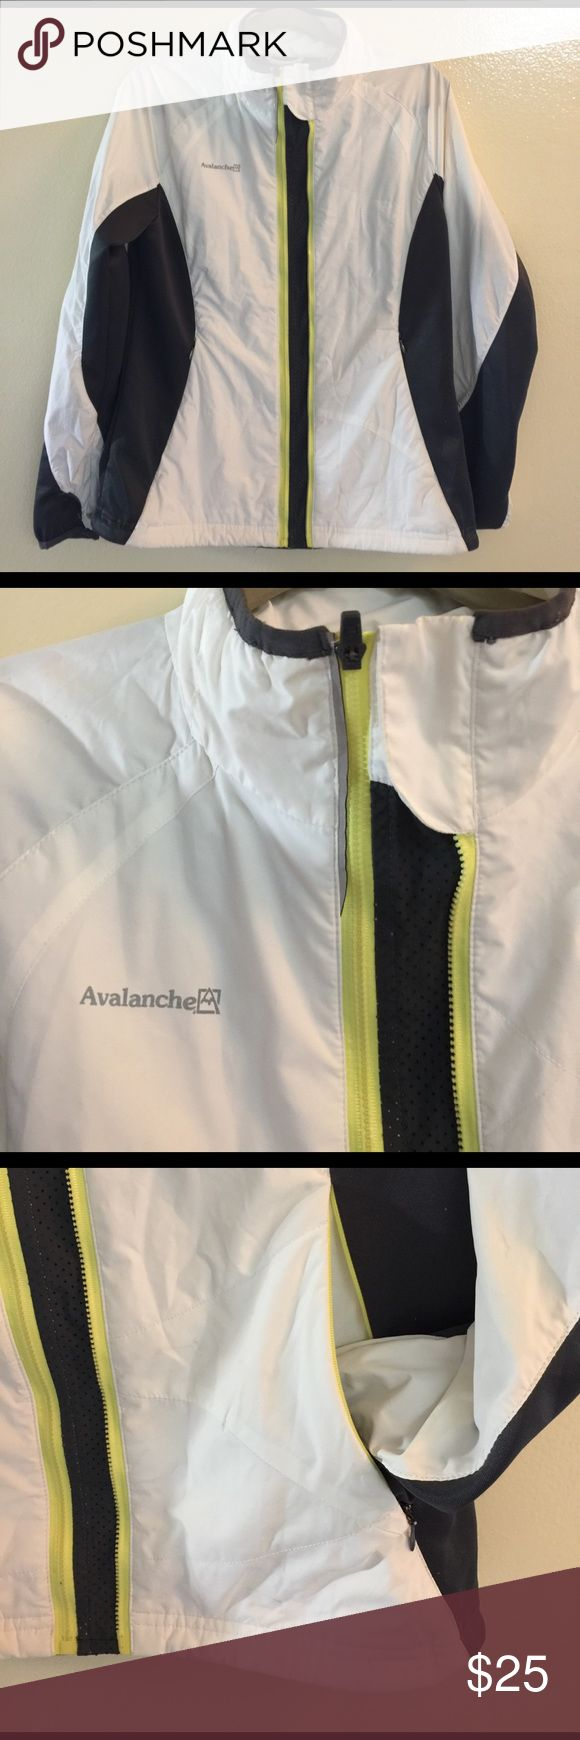 Avalanche Black /White Women's Running Jacket This is a gorgeous black and white jacket for the serious runner as it has a insulated running shell and thumb holes at bottom of sleeve. It is in great seldom used condition. It has yelled w trim on zipper and has a very classic look. You will love it! It is made of Polyester and Spandex. Avalanche Jackets & Coats Utility Jackets